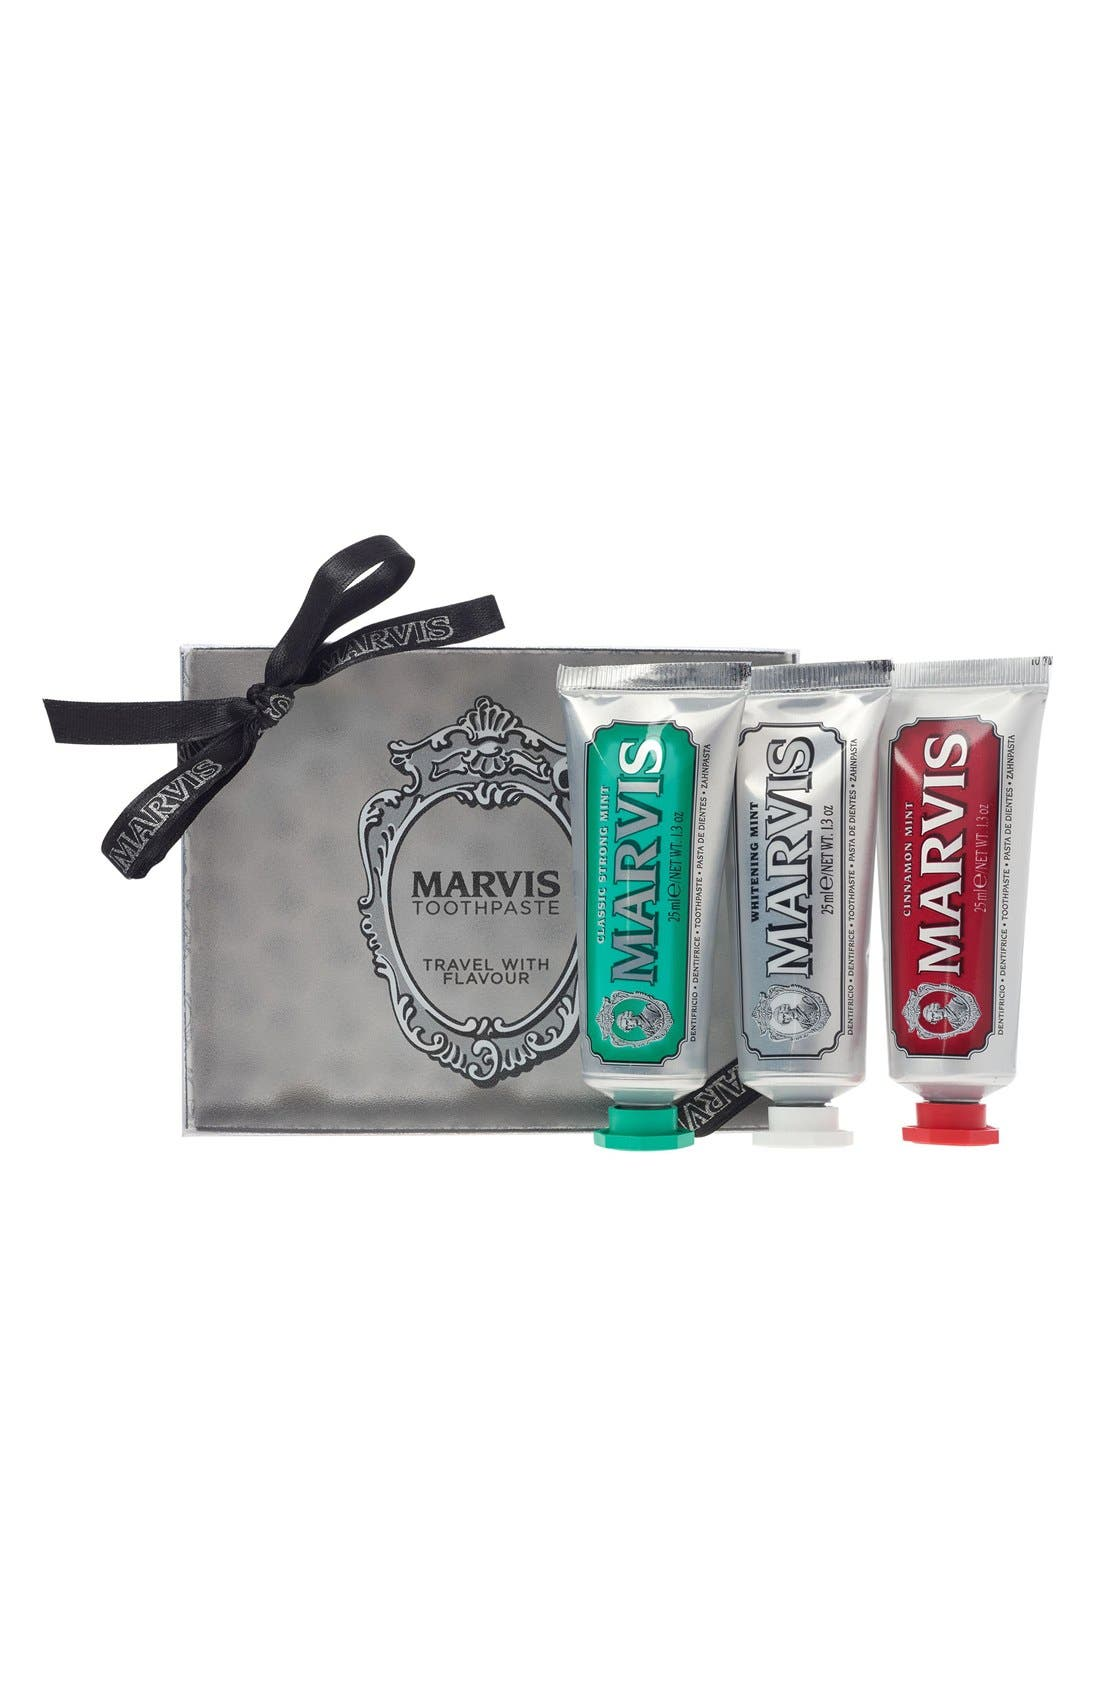 Marvis Travel with Flavor Set,                         Main,                         color, 000